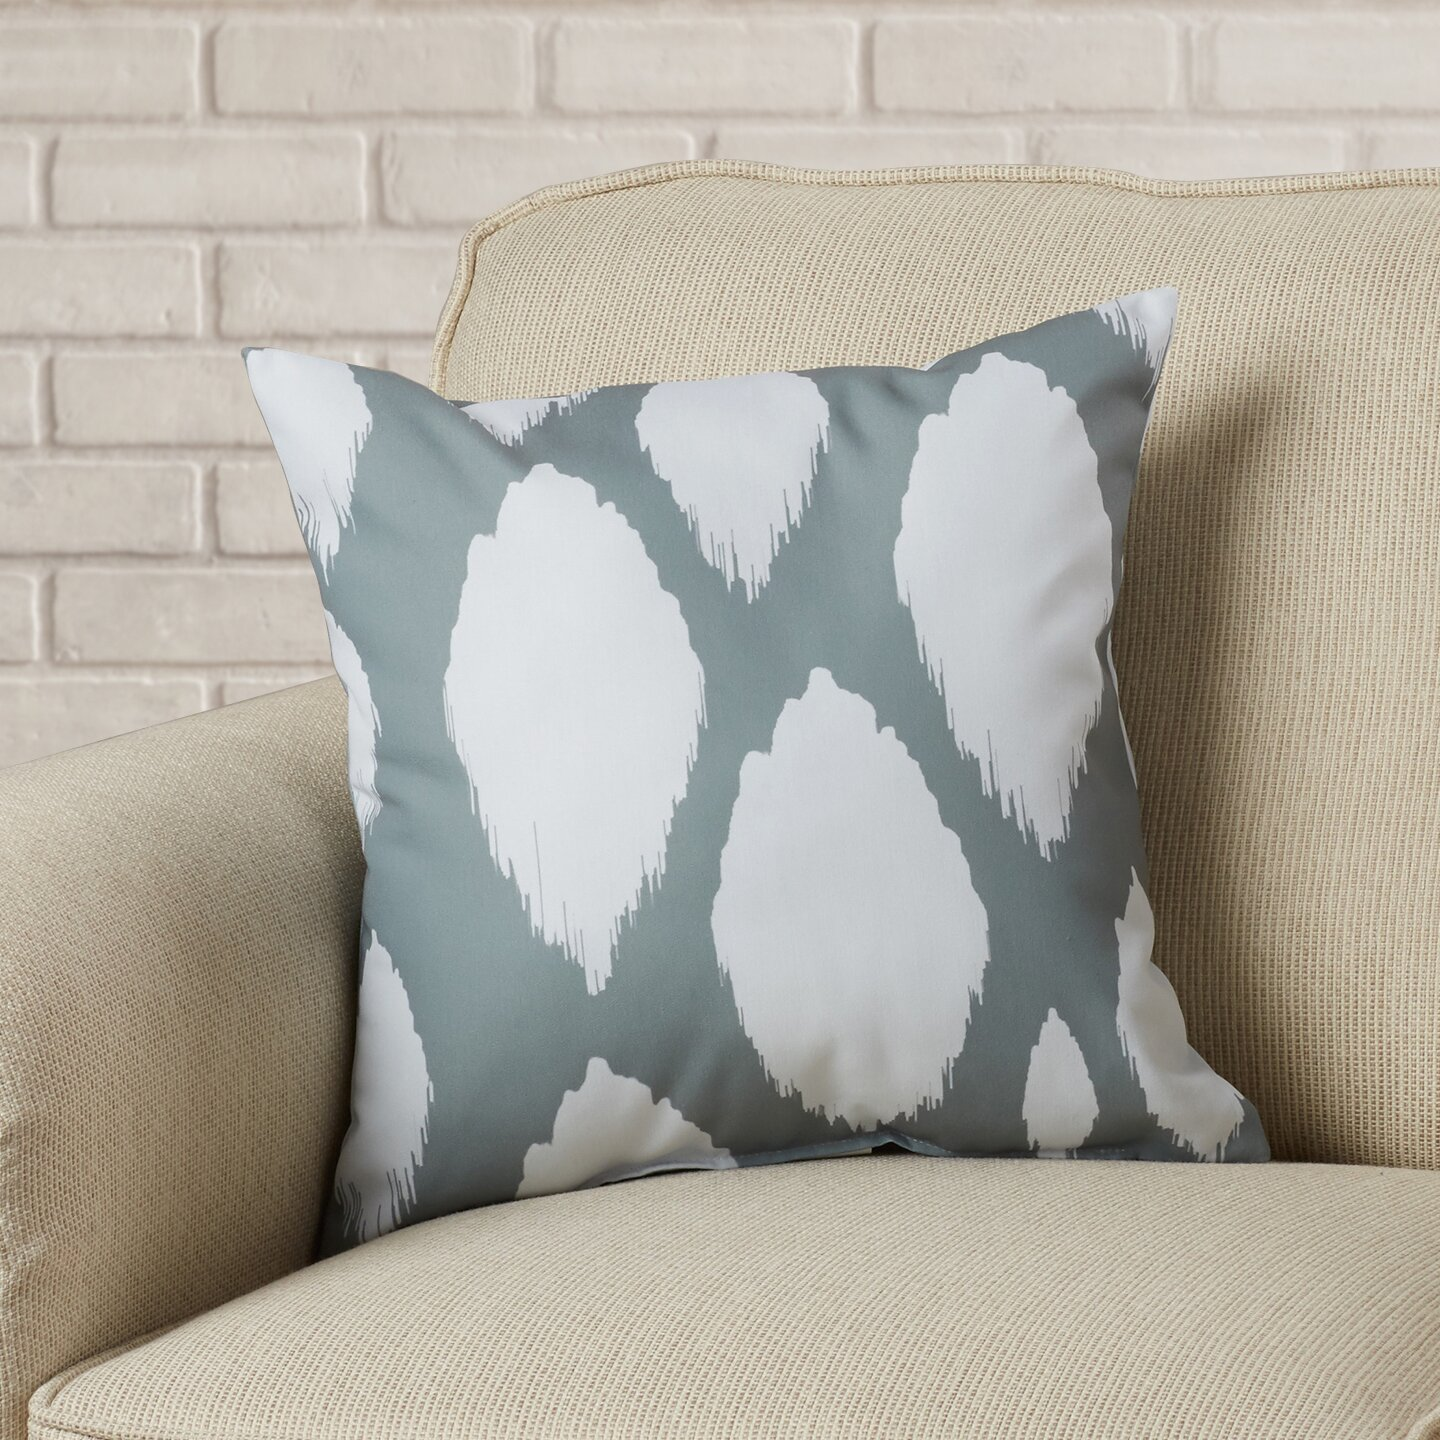 Throw Pillow Gallery : Varick Gallery Fillmore Decorative Down Throw Pillow & Reviews Wayfair